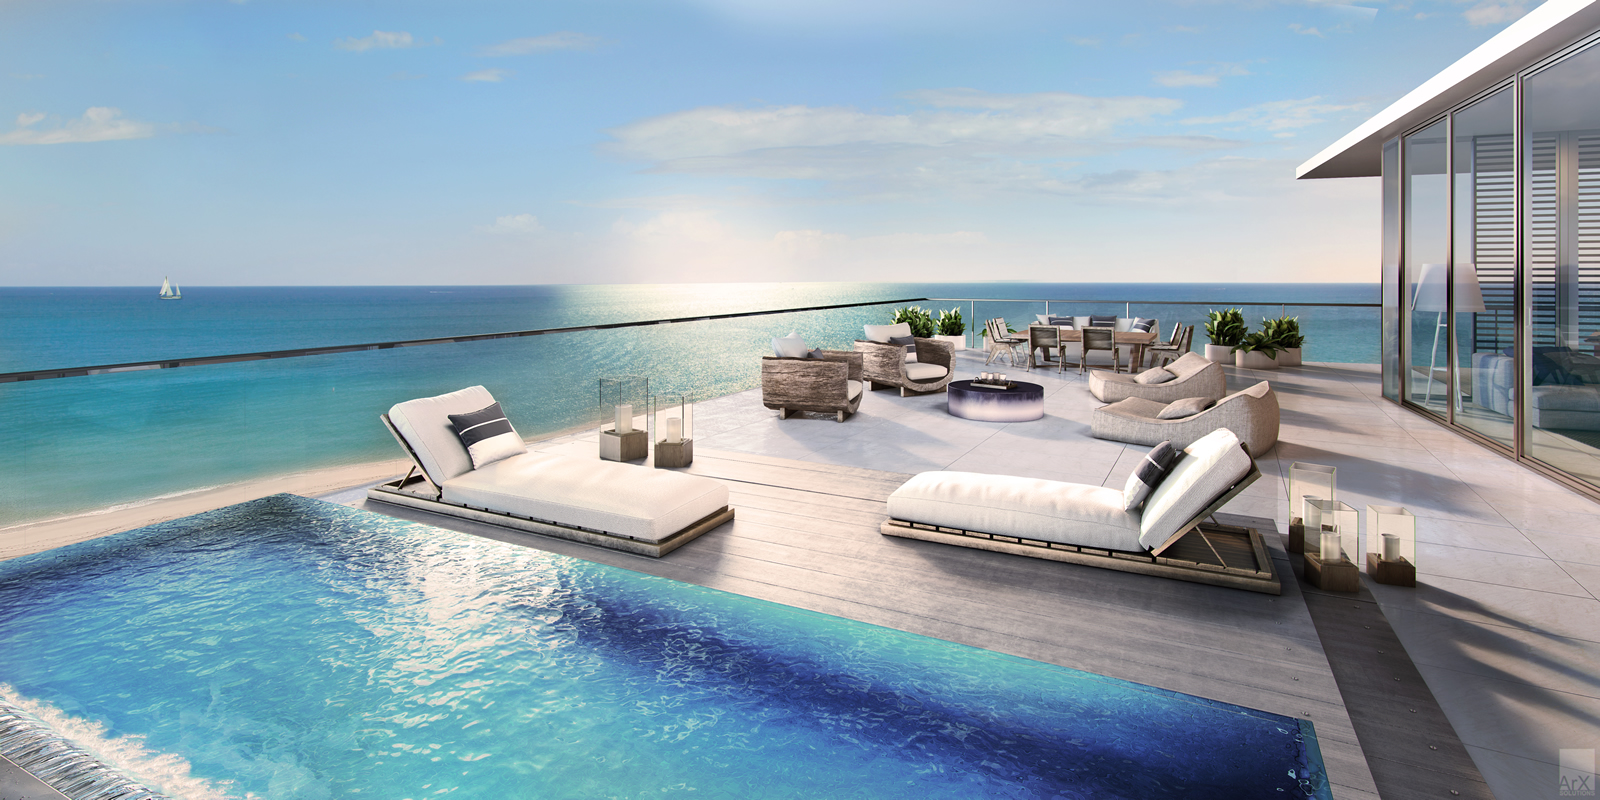 Auberge beach residences spa in fort lauderdale beachnew for Pool design fort lauderdale